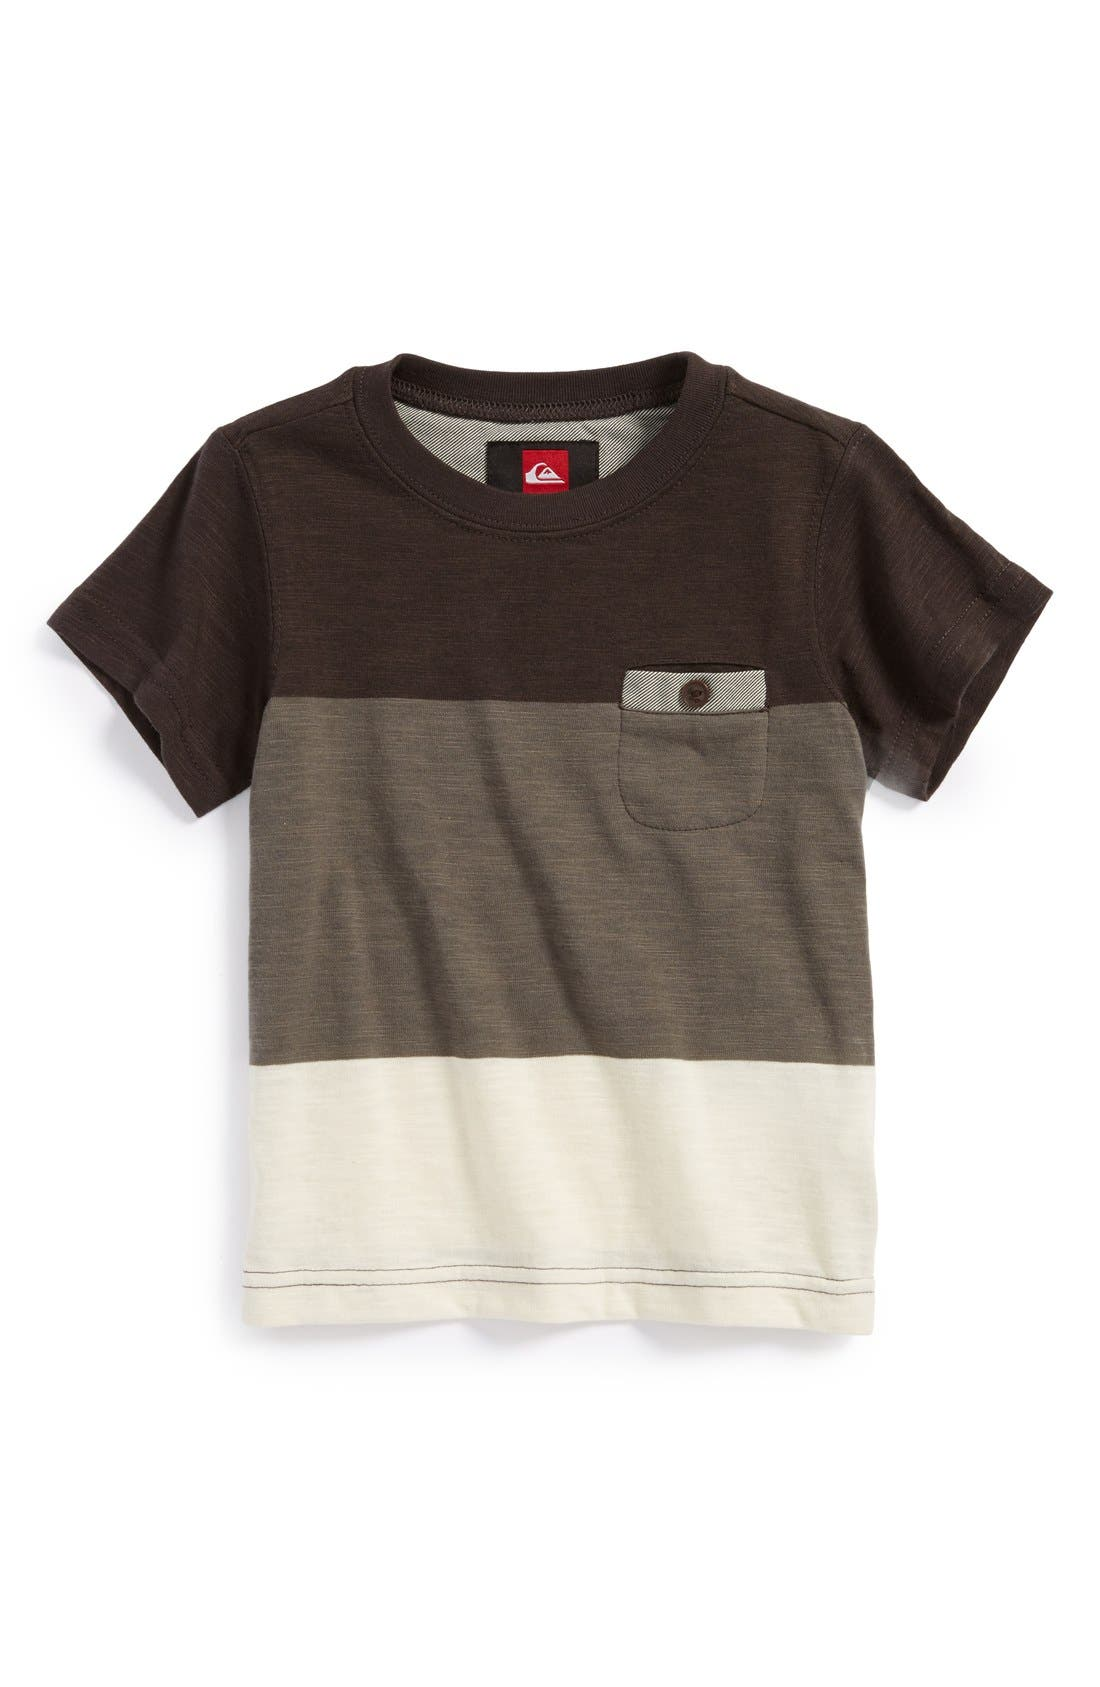 Alternate Image 1 Selected - Quiksilver 'Half Pint' Slub T-Shirt (Toddler Boys)